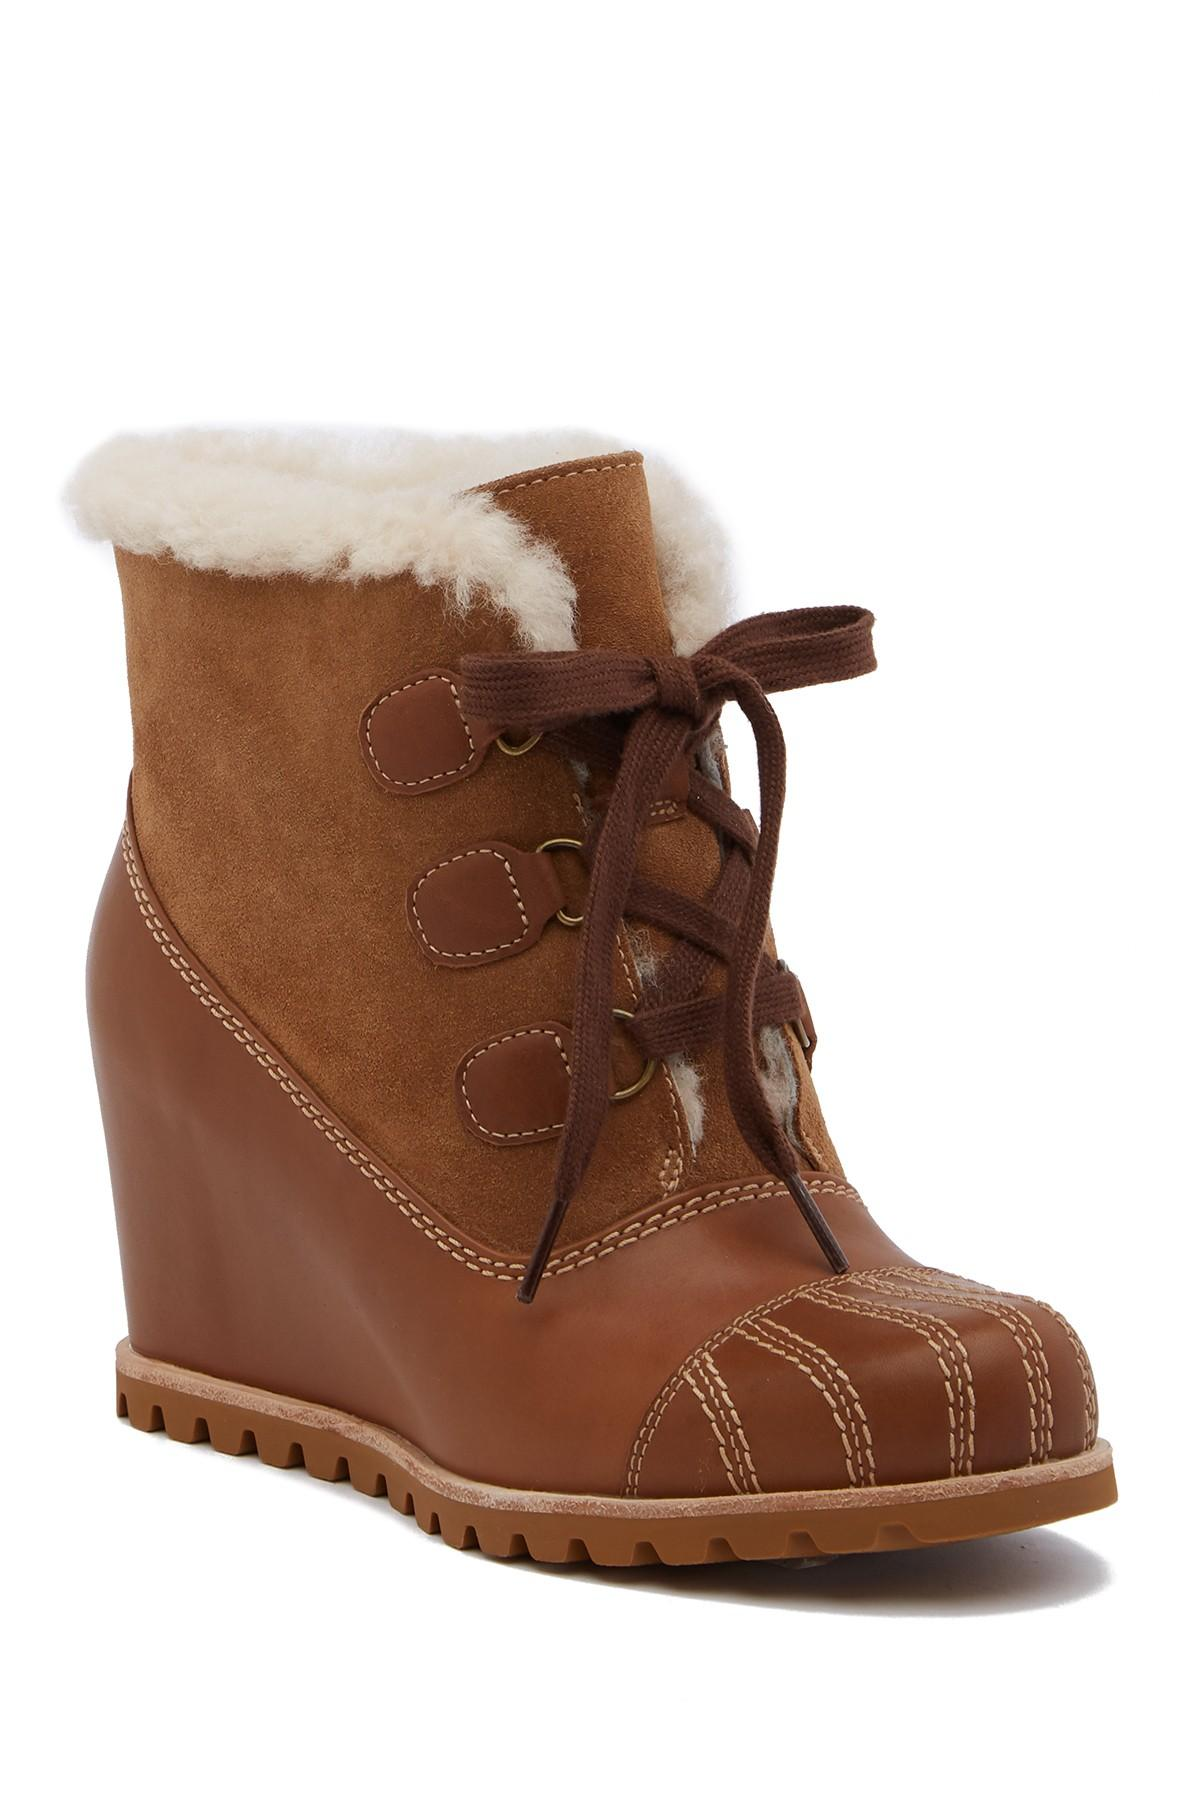 fb770e4d4d2 UGG Alasdair Genuine Shearling Lined Waterproof Wedge Bootie in ...